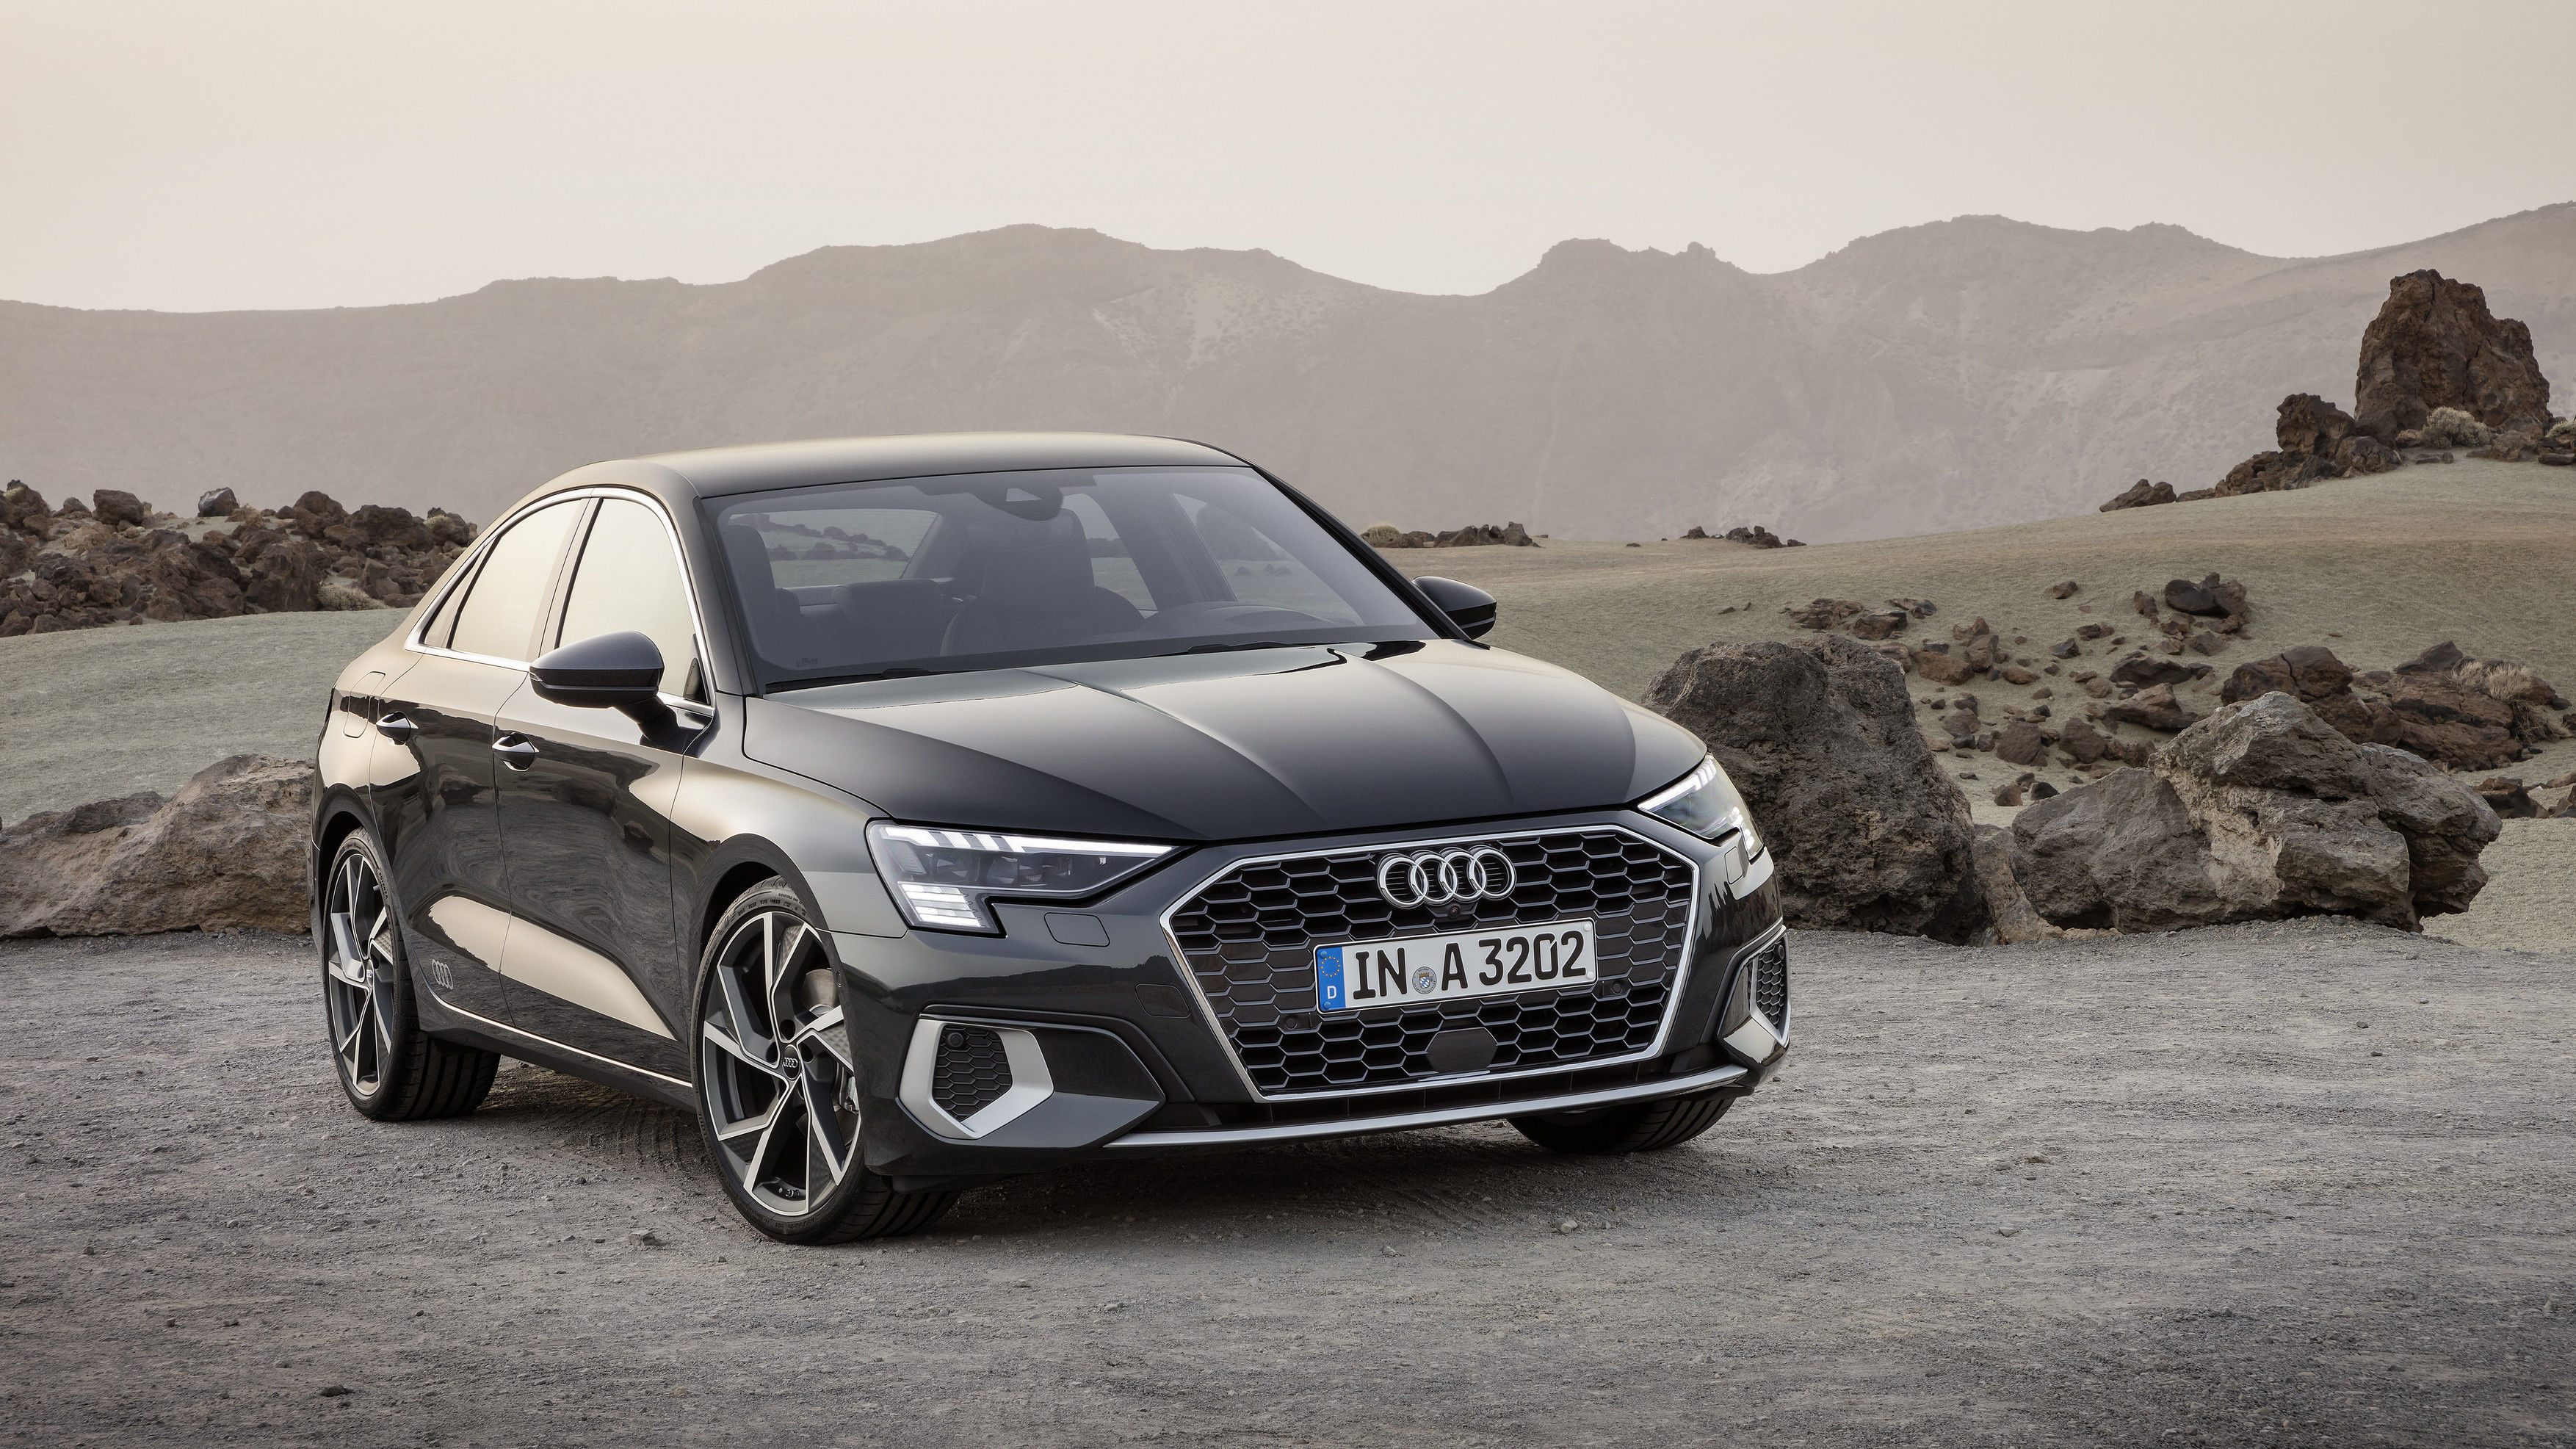 Audi has unveiled the new India-bound A3 sedan - a bigger, sportier looking car than its previous generation. Stylish coupe-like looks and new chassis set-ups make it distinctly sportier than its predecessor.